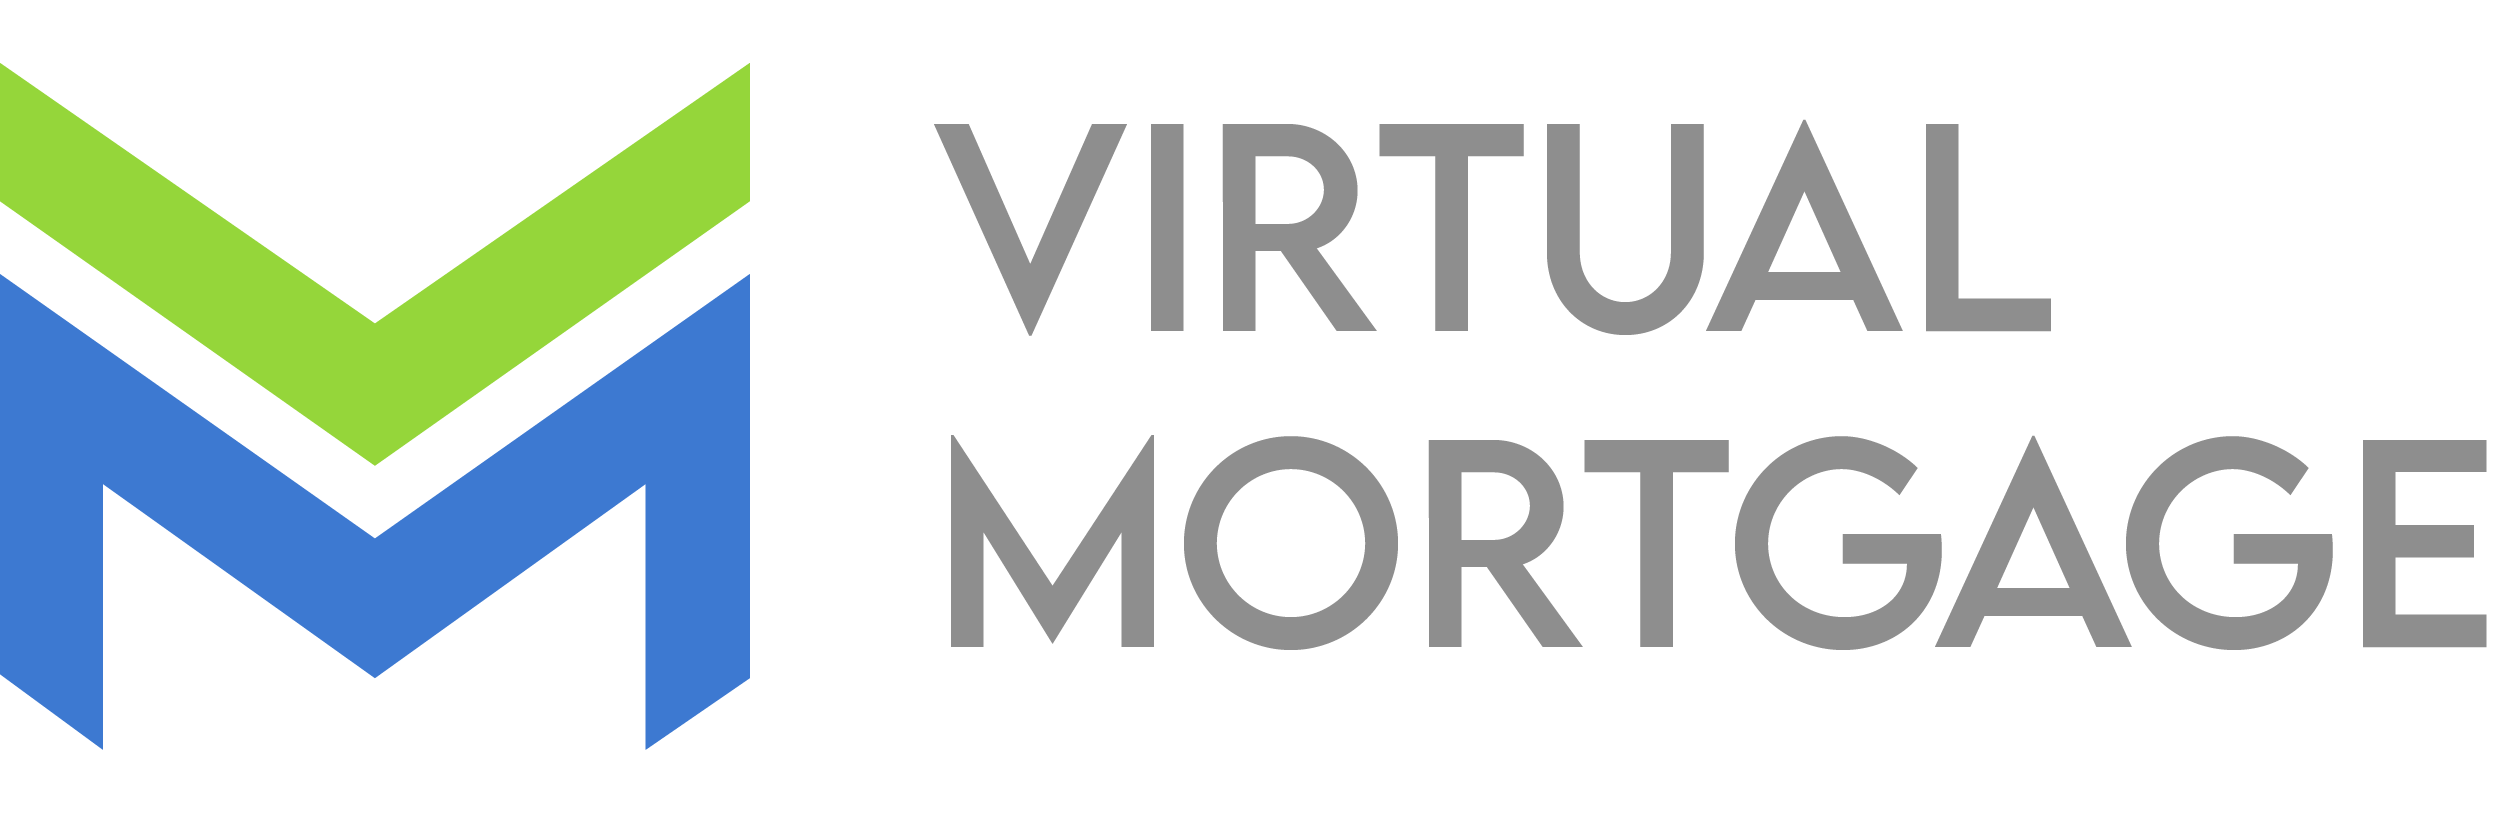 Virtual Mortgage